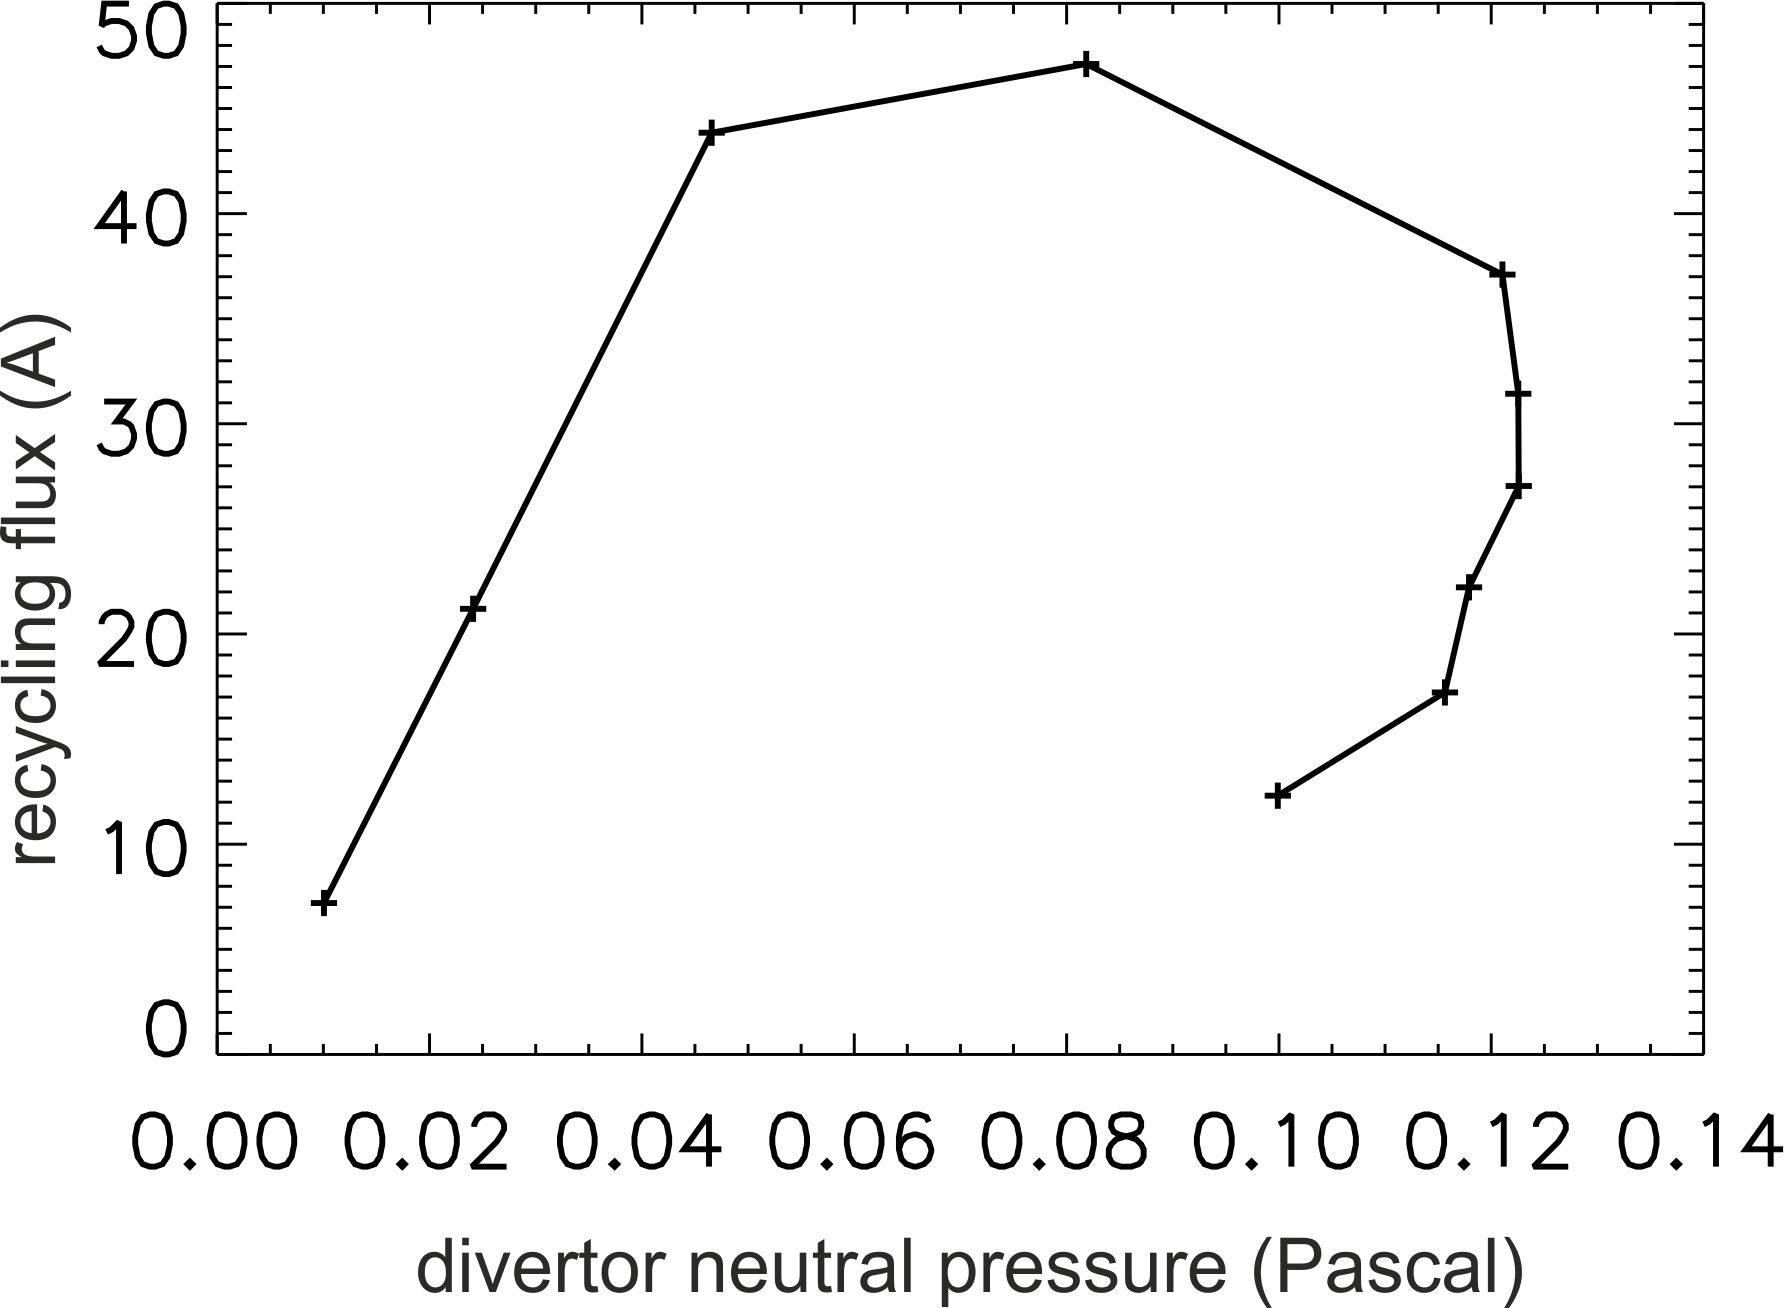 Correlation between divertor neutral pressure and the total recycling flux from EMC3-Eirene simulations.